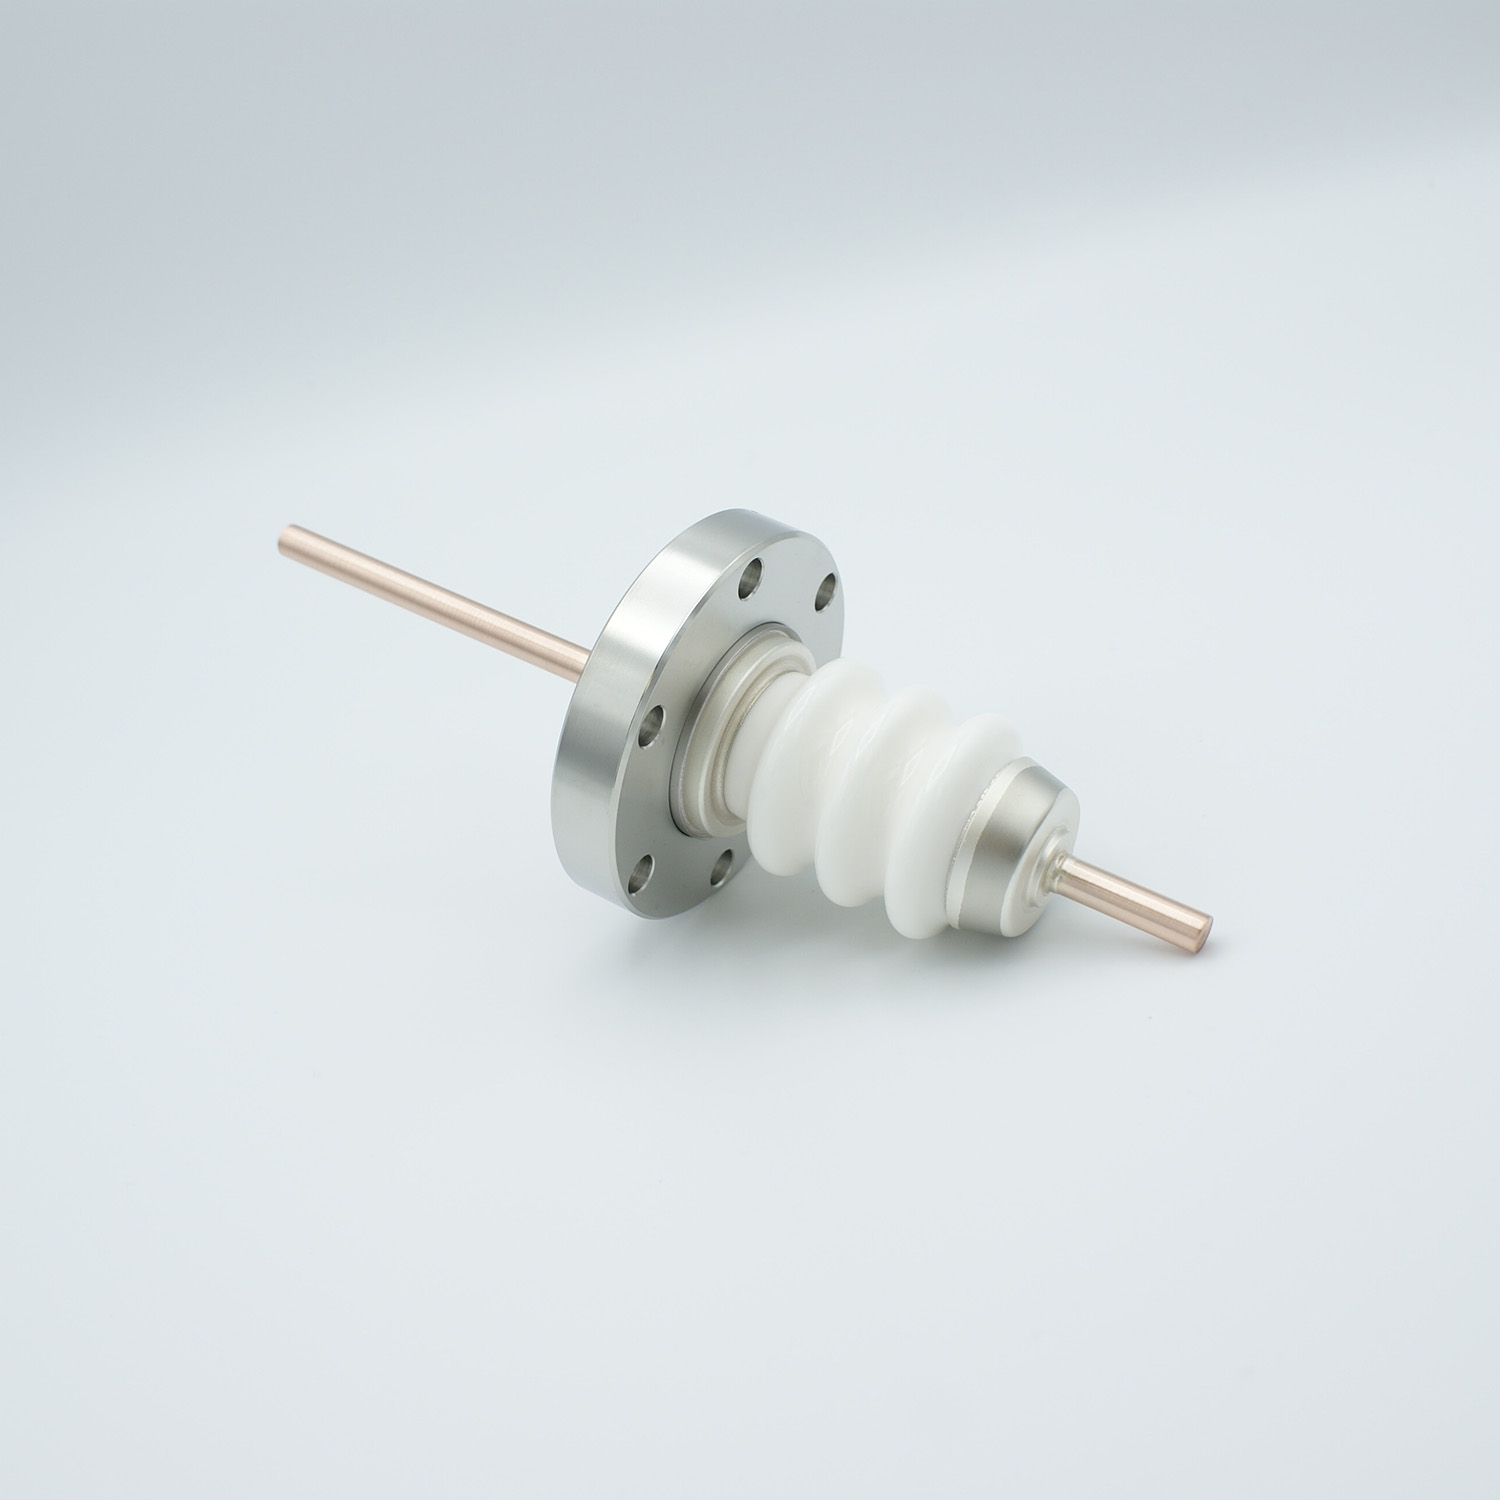 1 pin high voltage feedthrough 20000Volt / 180 Amp. Copper conductor DN40CF flange